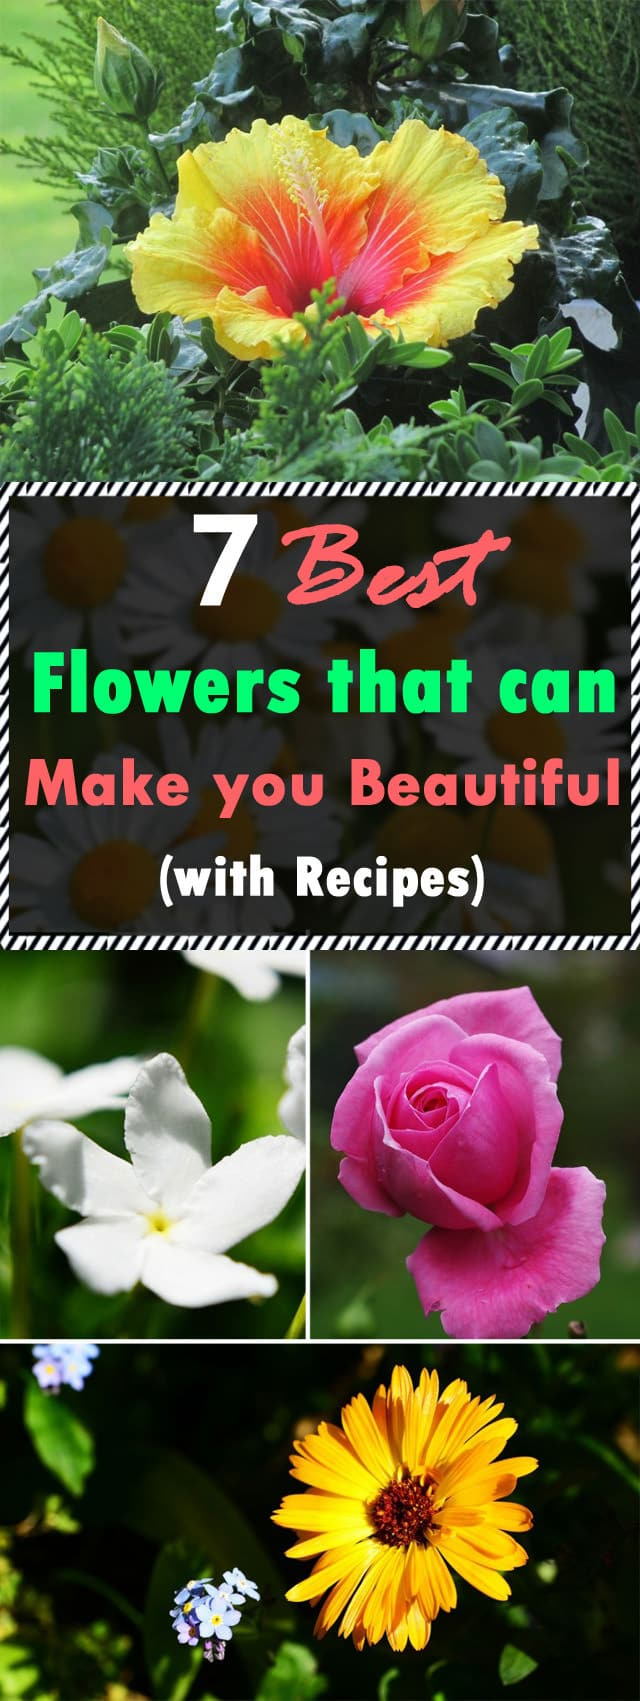 Do you know some of the flowers in your garden can make you more BEAUTIFUL? Here are 7 flowers for skin care with recipes. Check out!